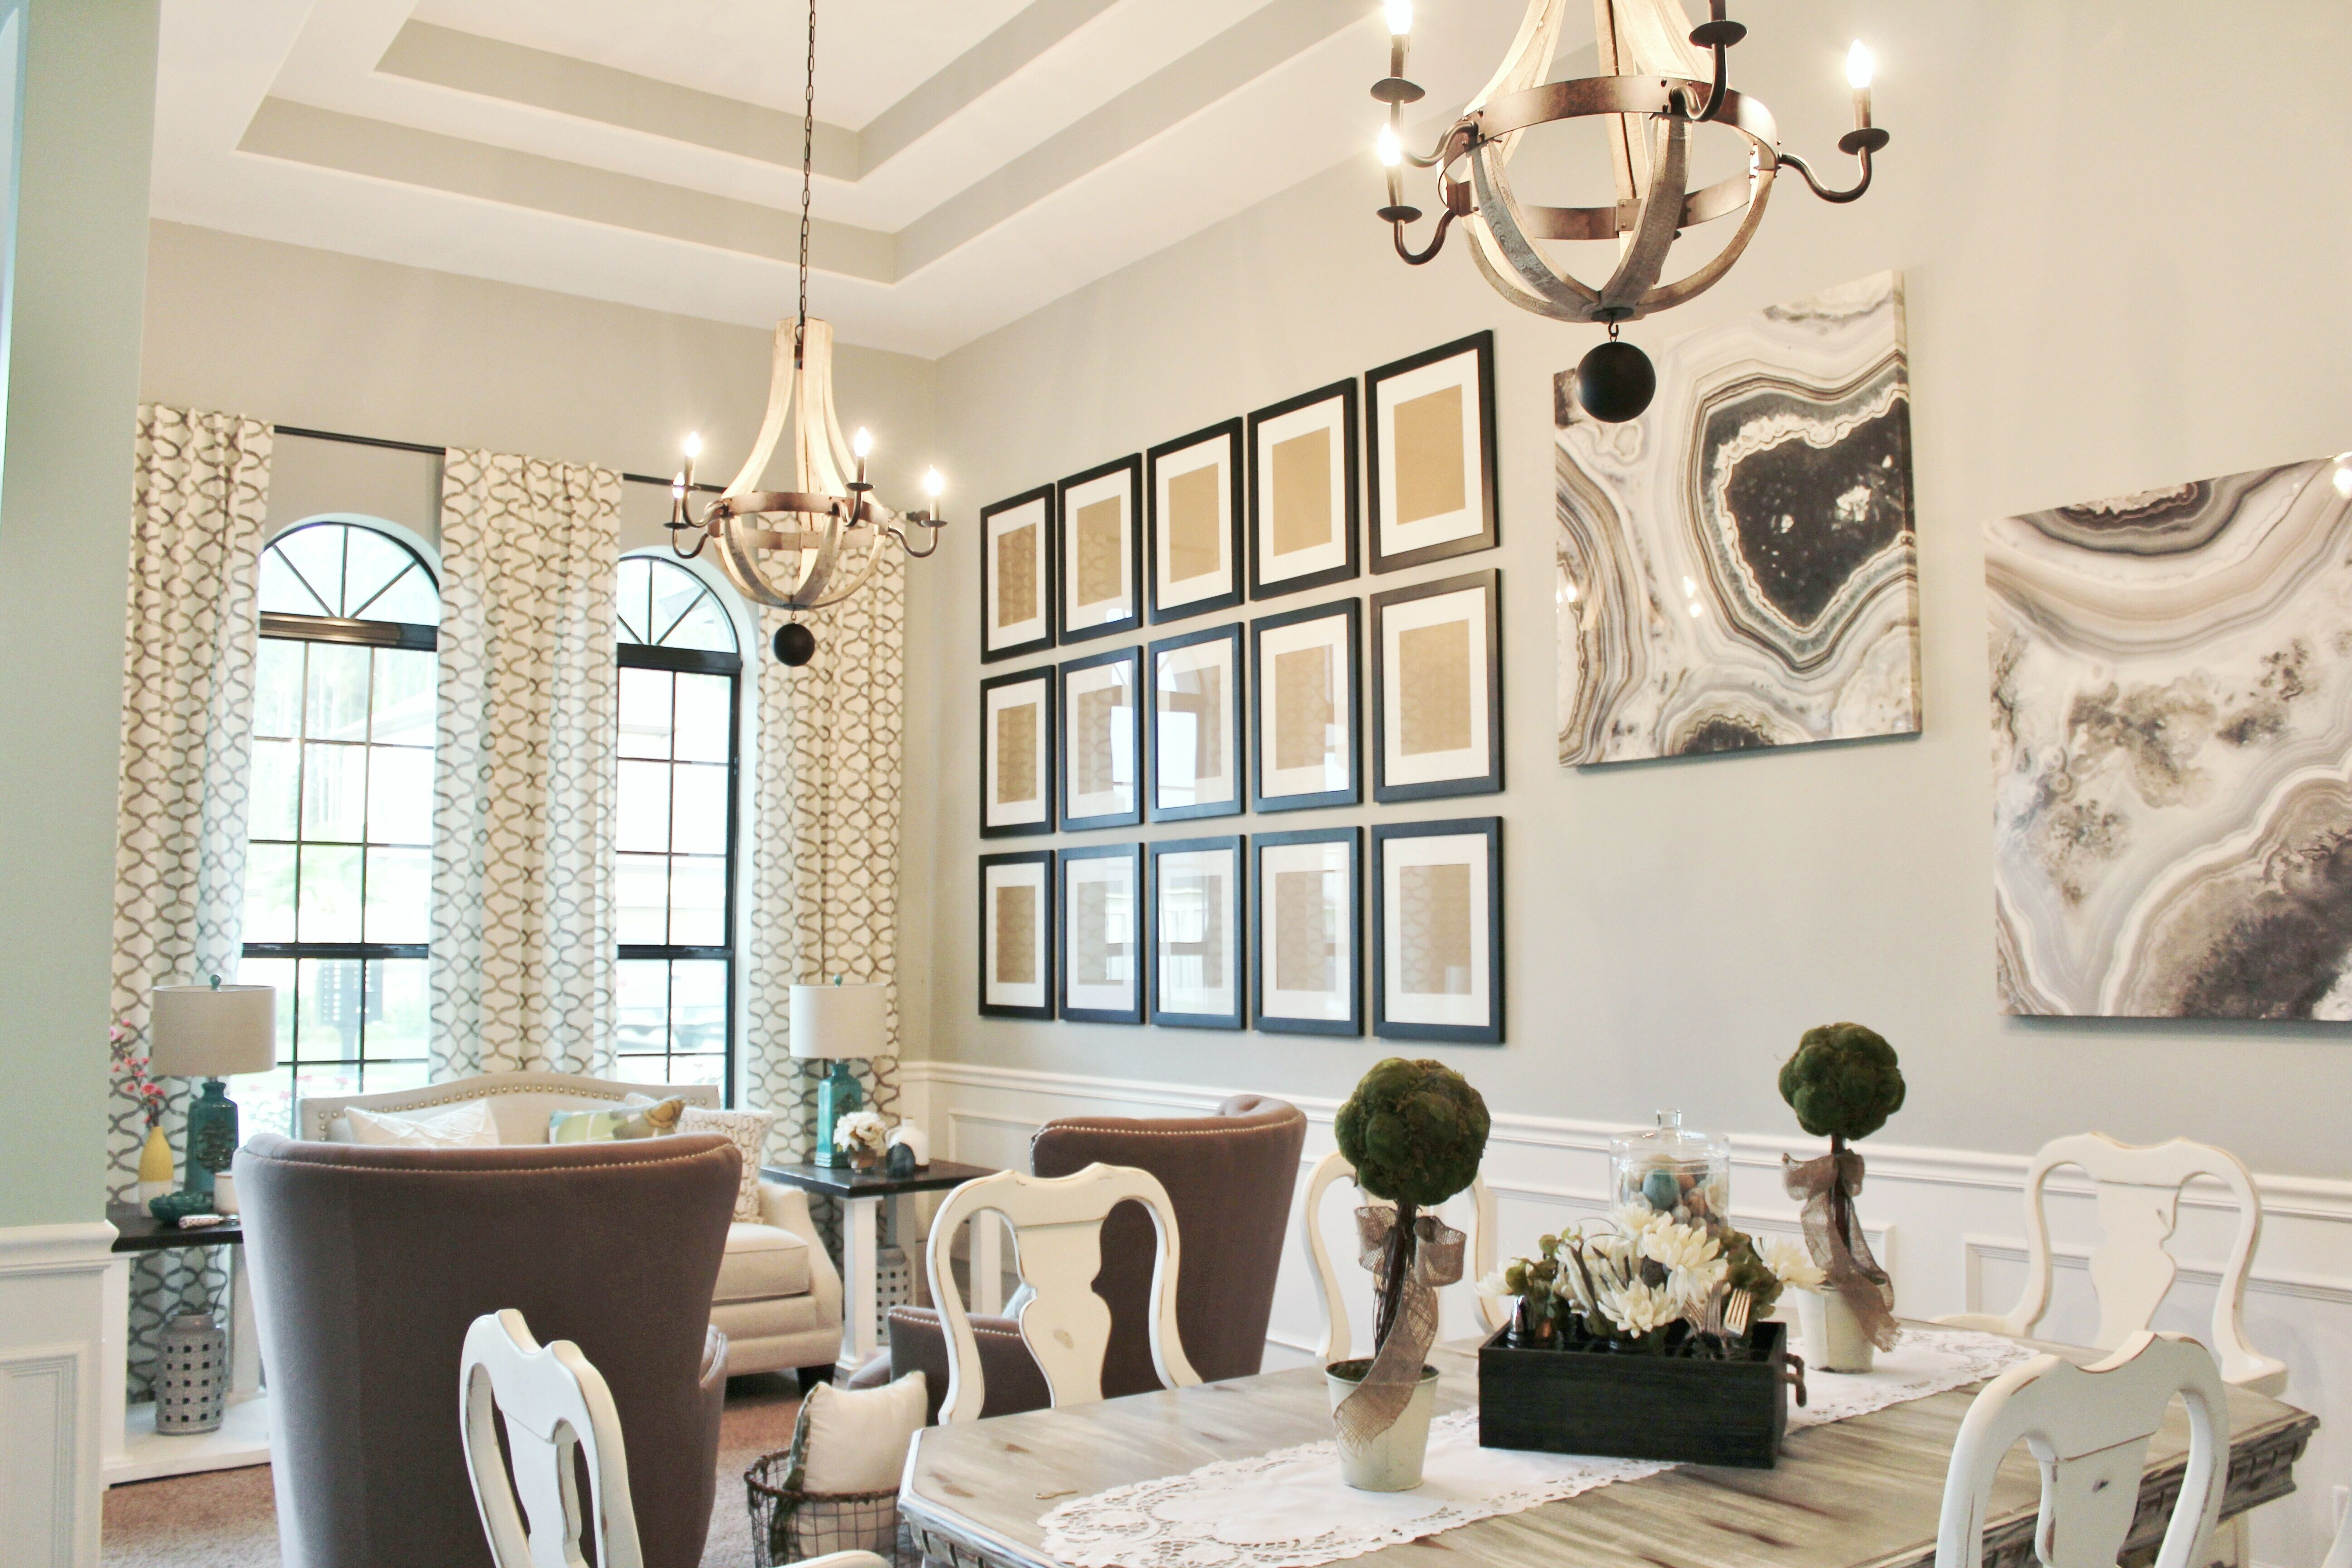 Transitional Living & Dining Room With Gallery Wall Agate Wall Adorable Wall Art For A Dining Room Design Inspiration